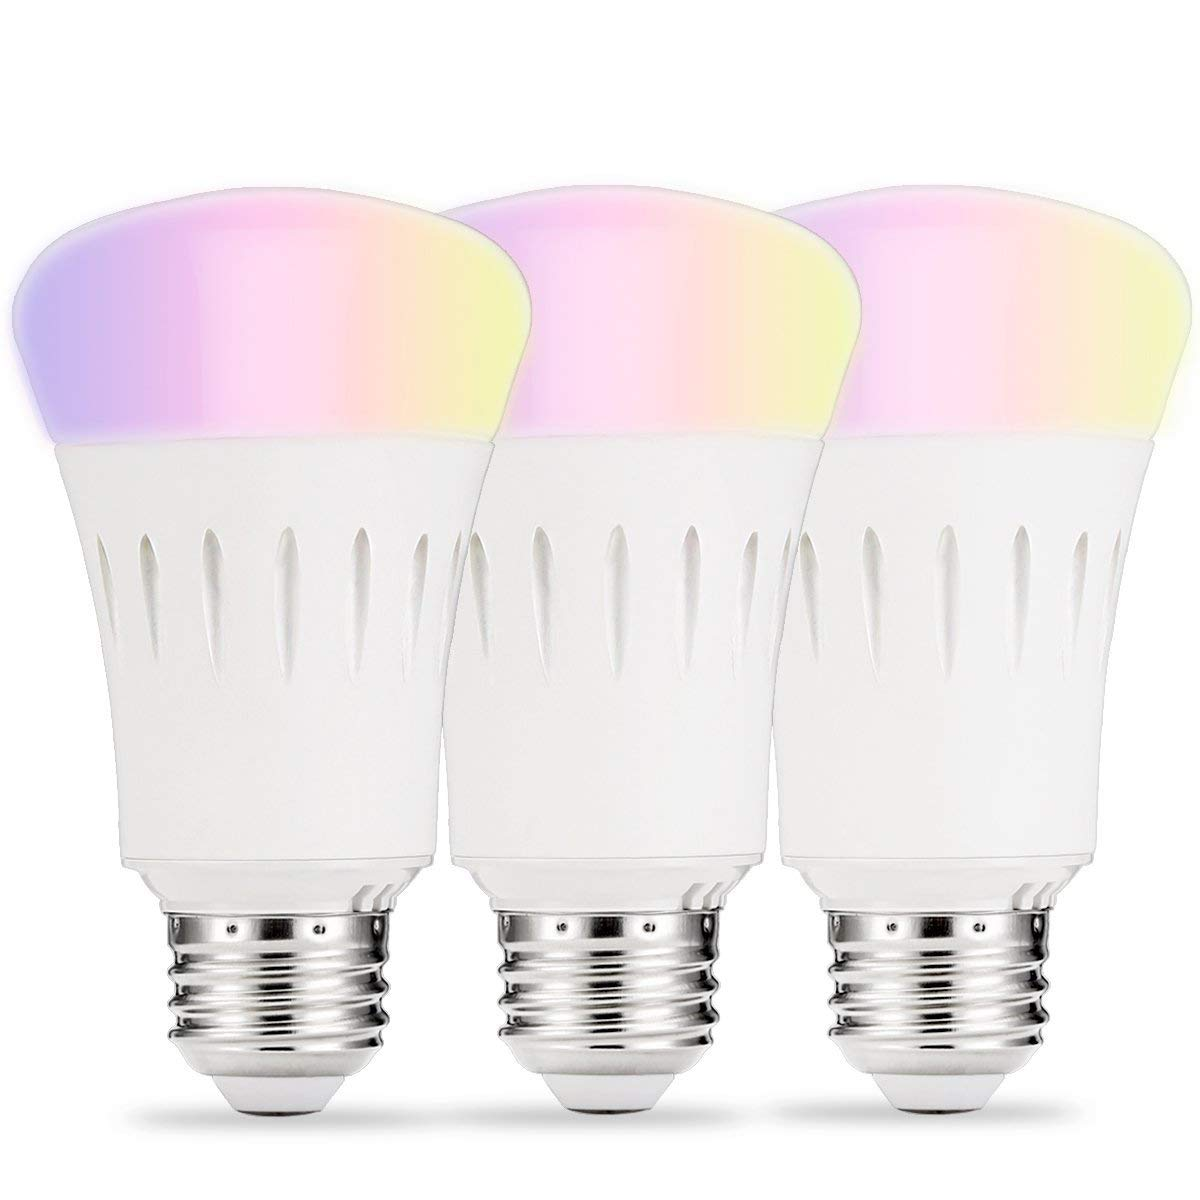 LOHAS Smart Lighting LED Light Bulbs A19 Dimmable Daylight White Ambiance Lights, Multicolored WiFi LED Smart Bulb, 60W Replace Smartphone Voice Control Lighting Compatible with Alexa, UL Listed 3Pack